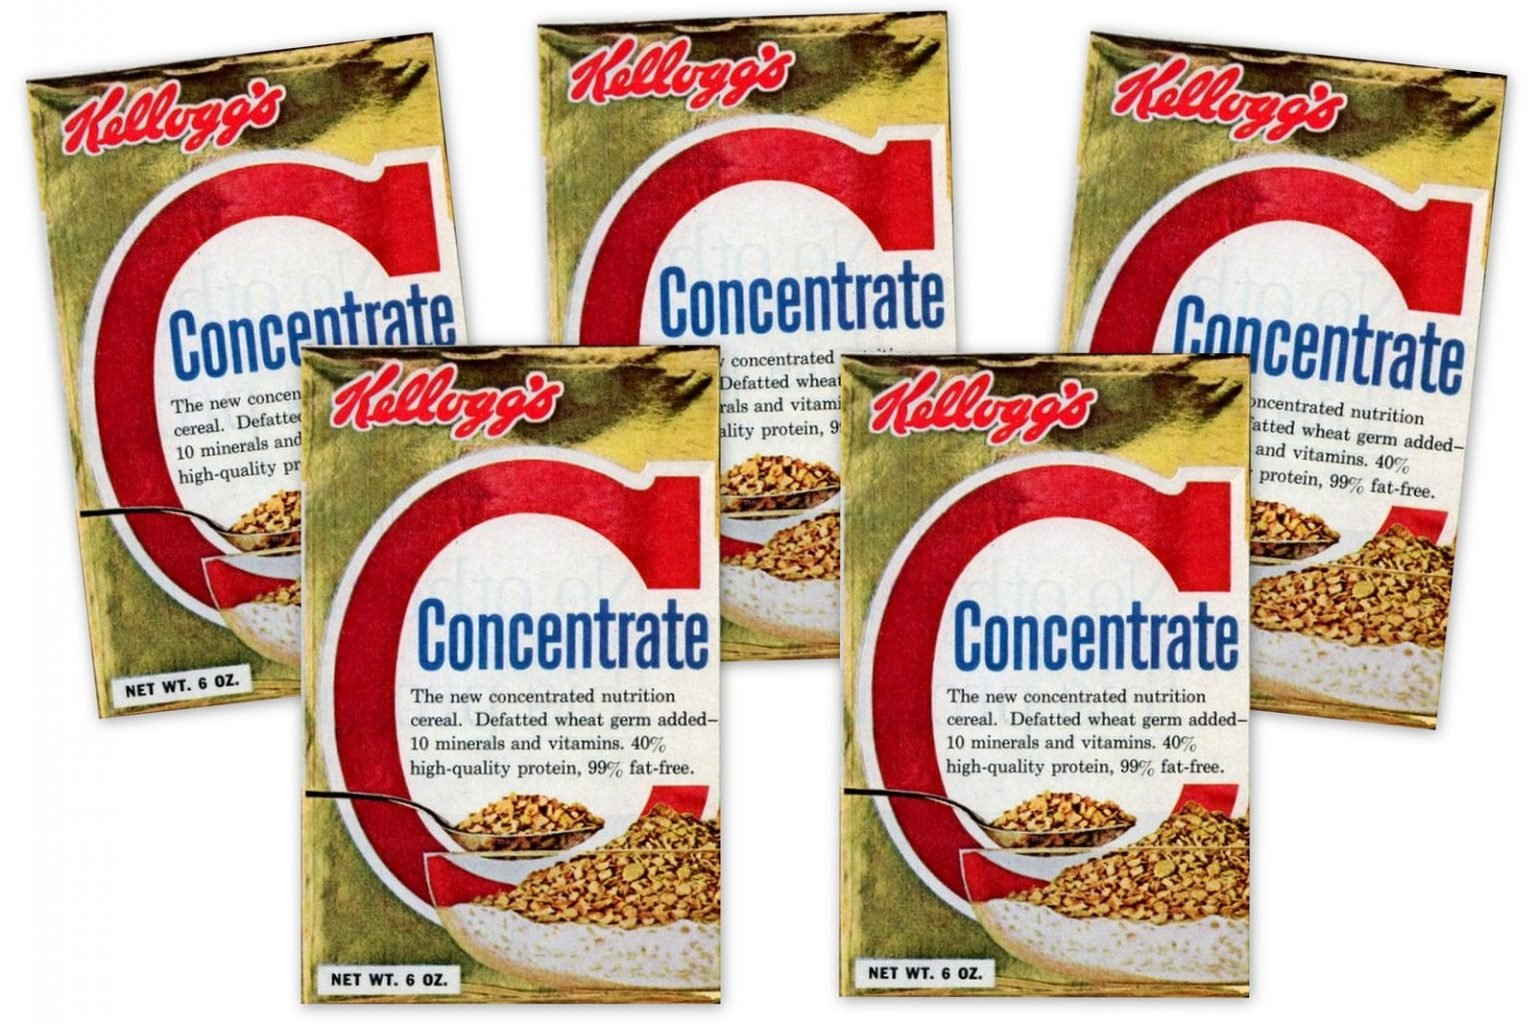 Vintage Kellogg's Concentrate cereal